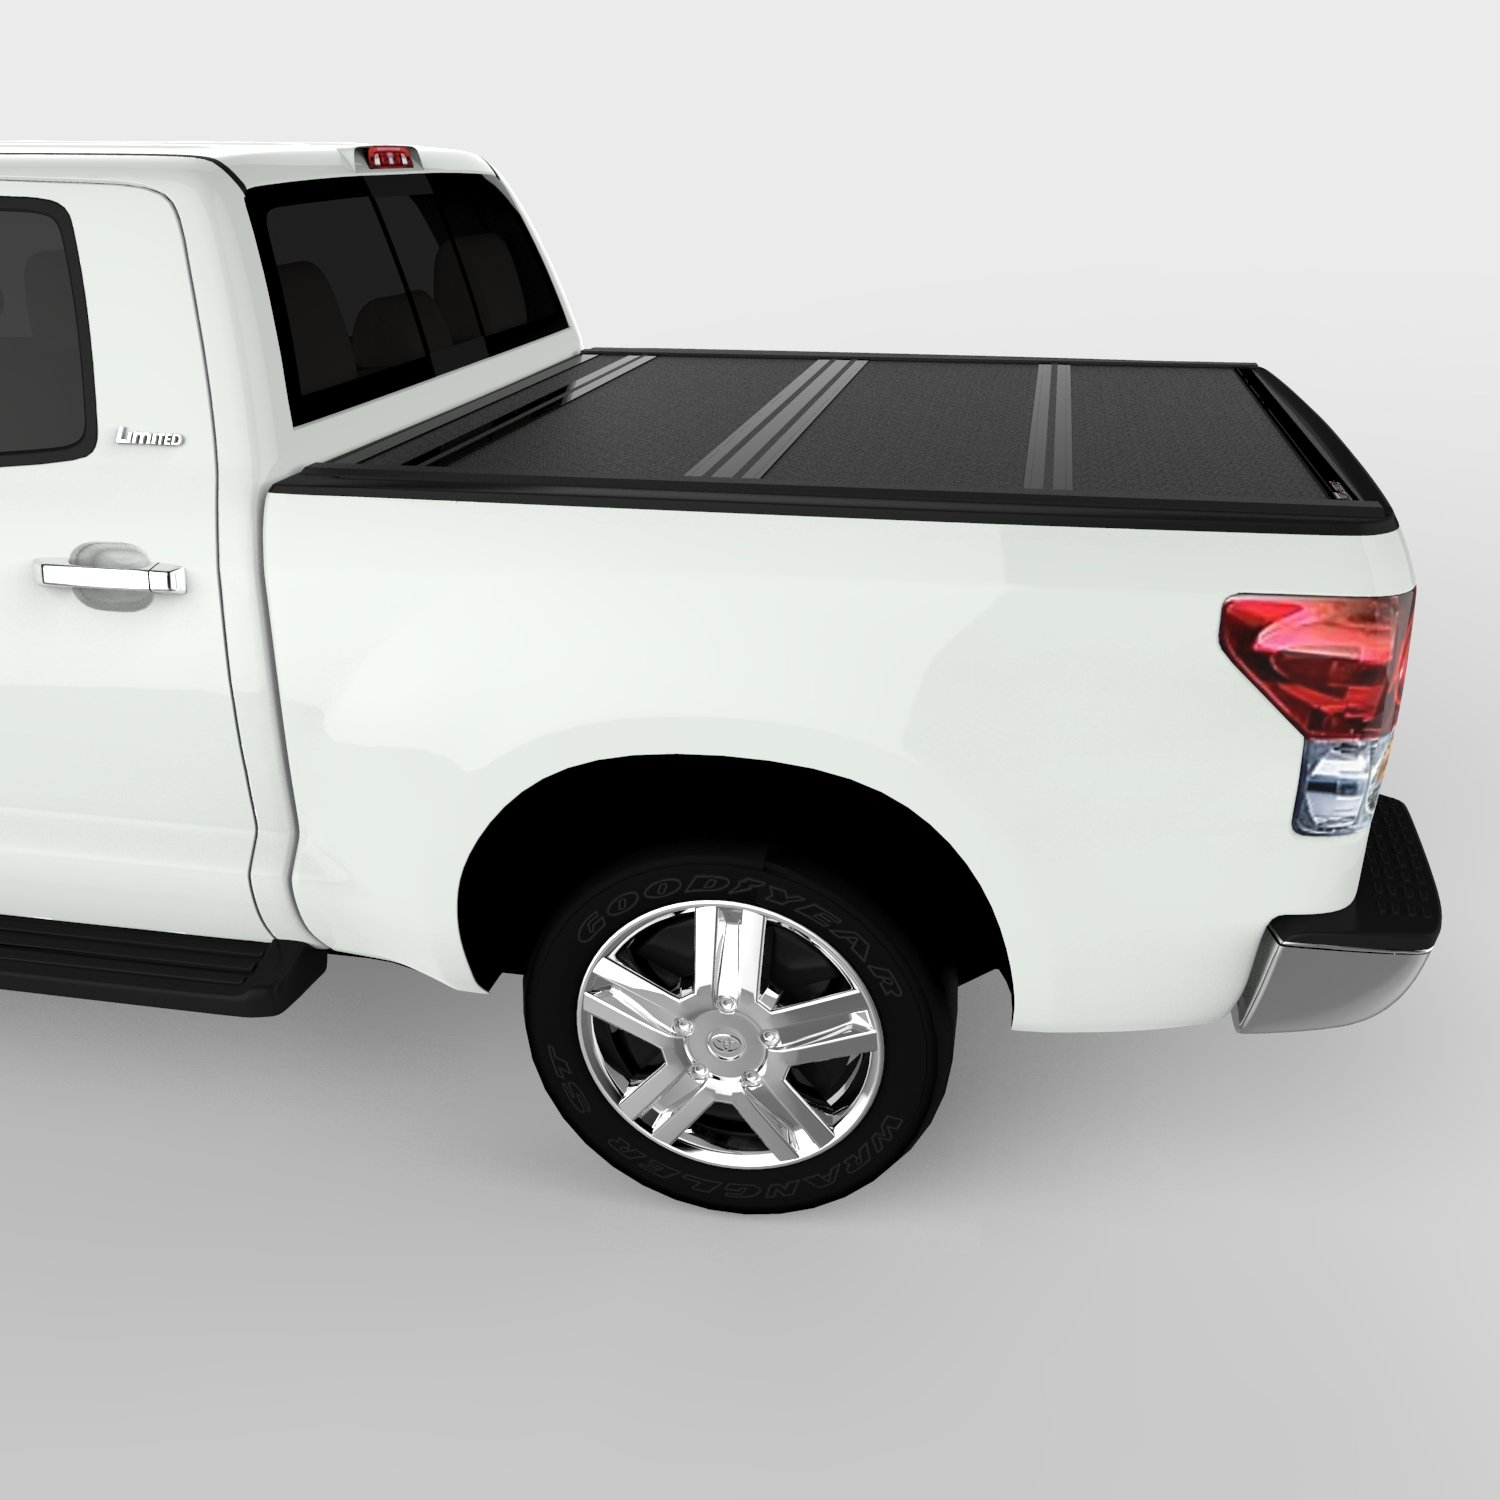 control flex riding your is for gives folding gm bed positions three secure you of the silverado choose chevy tonneau truck offering cover best ultimate hd undercover covers that a hard